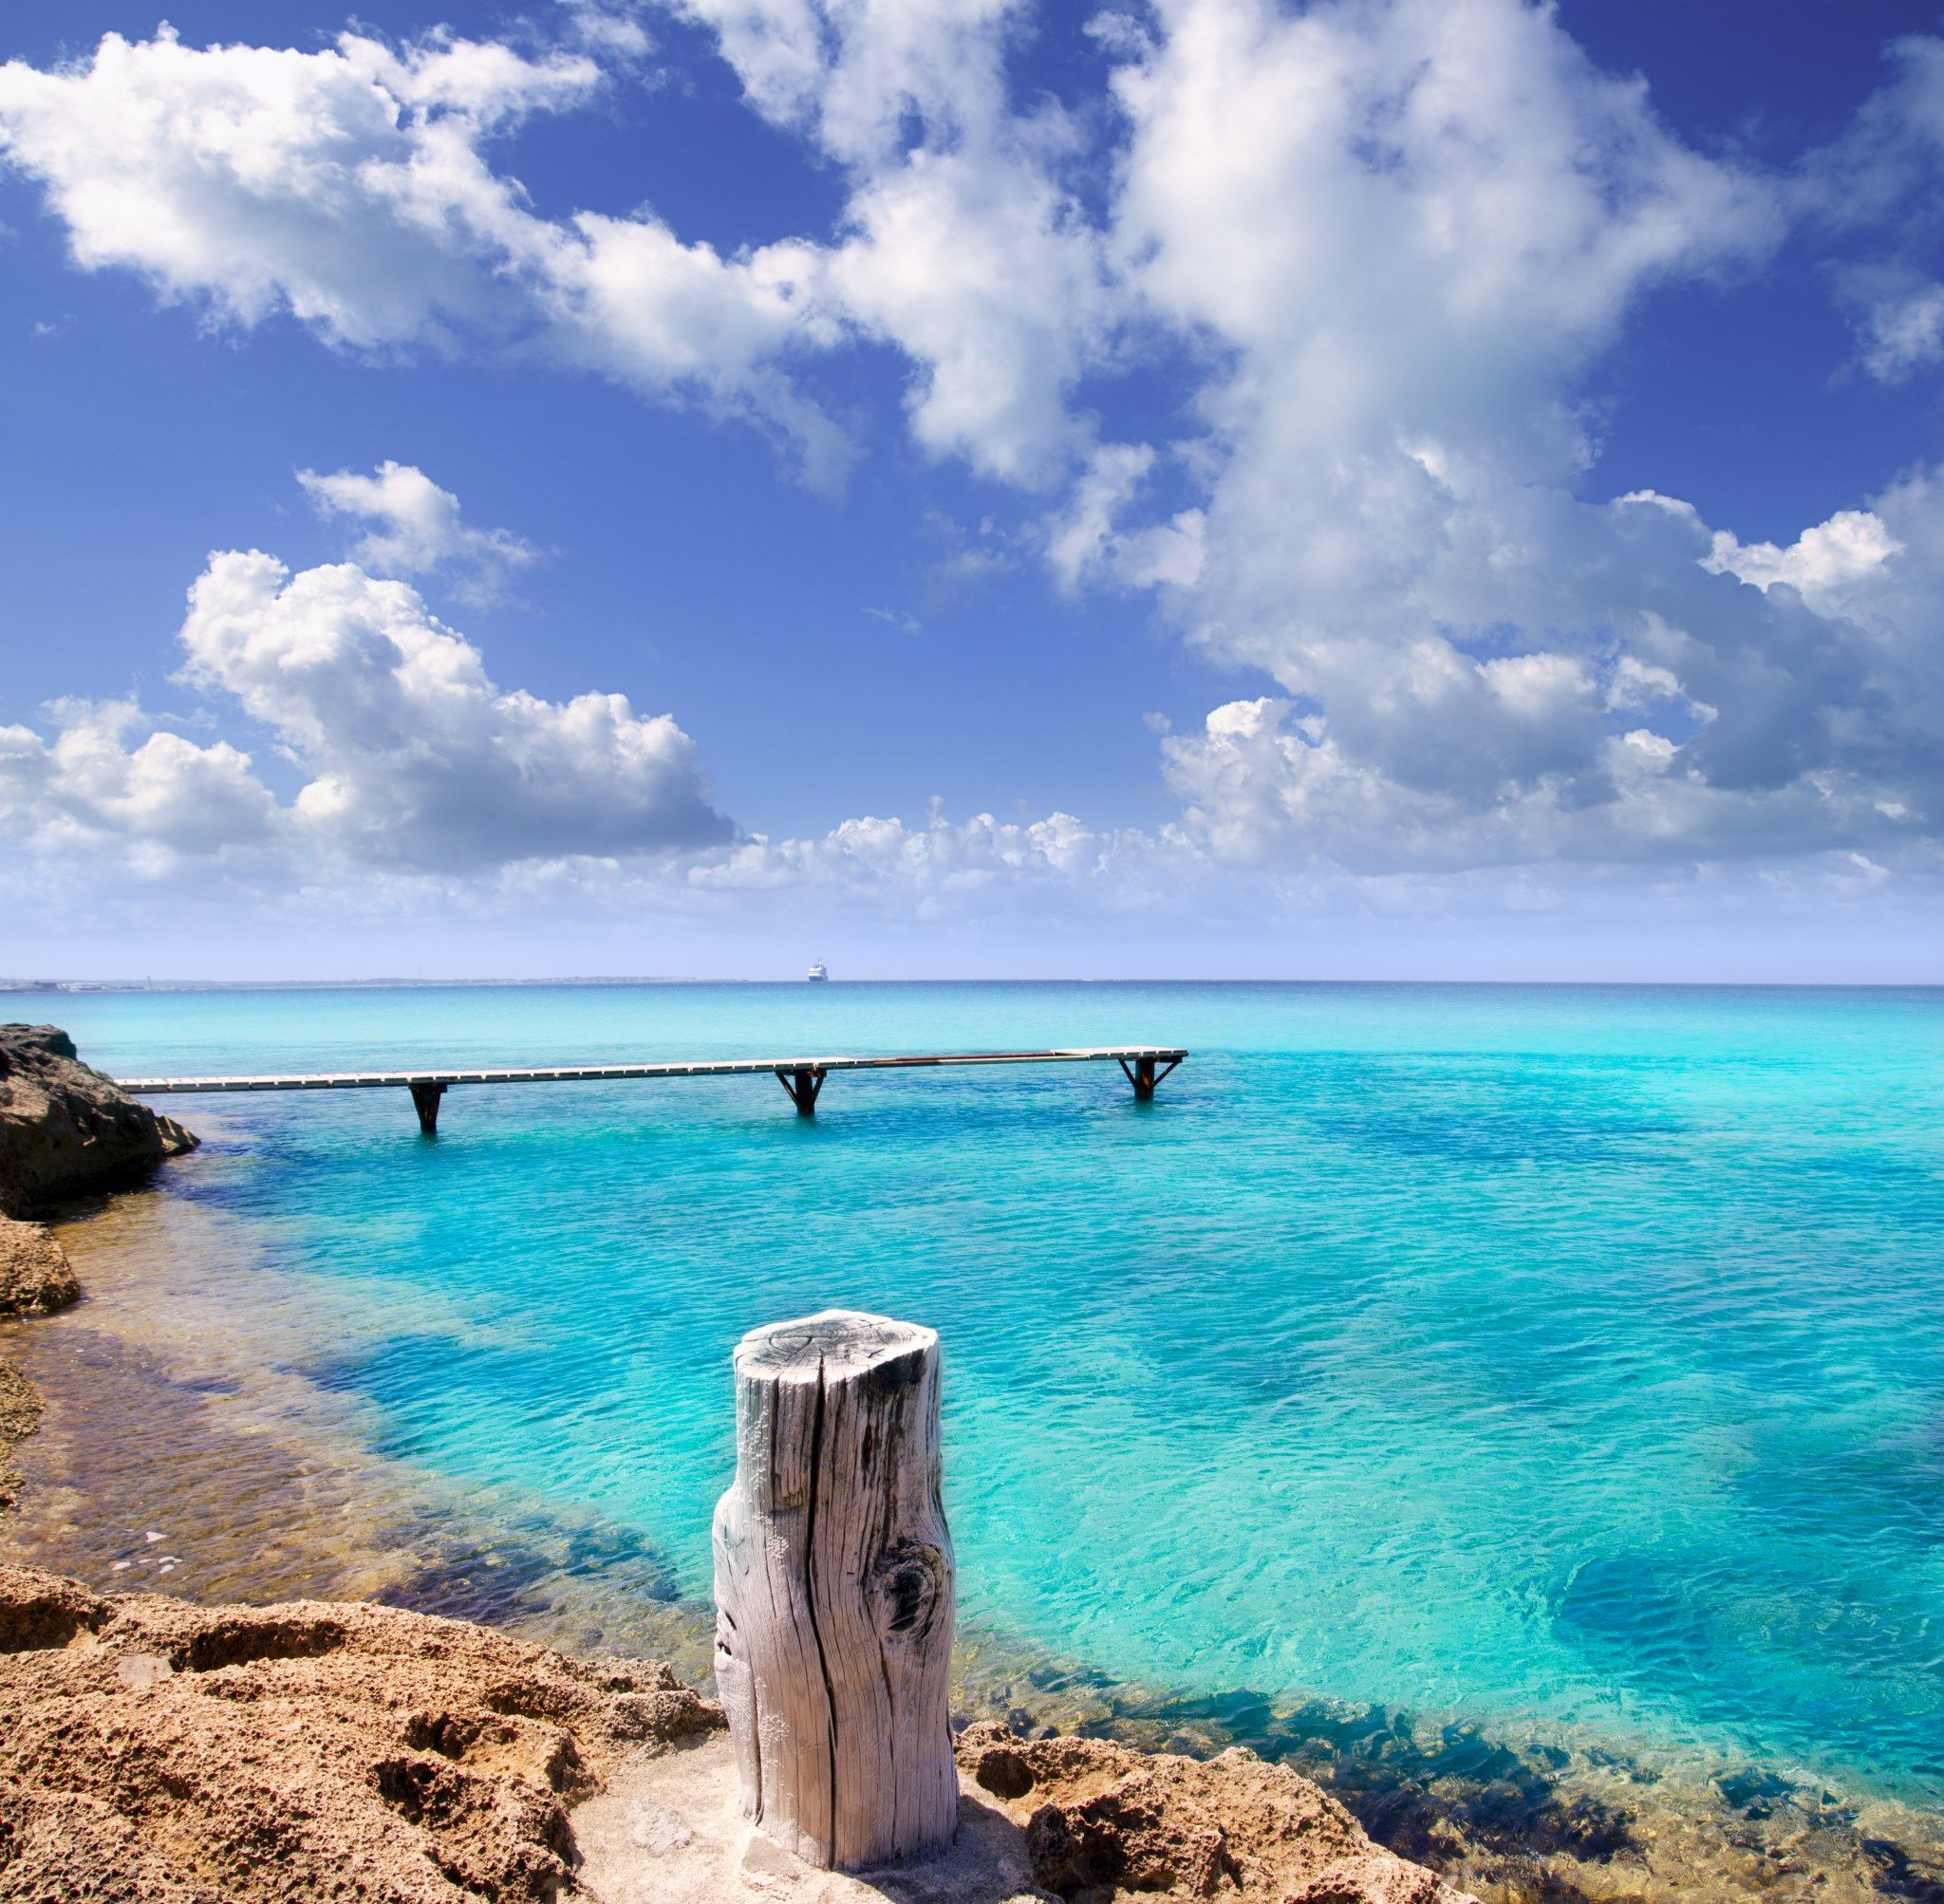 Long Stay Vacations In Spain: The Island Of Formentera, Spain. The Clearest Water I Have